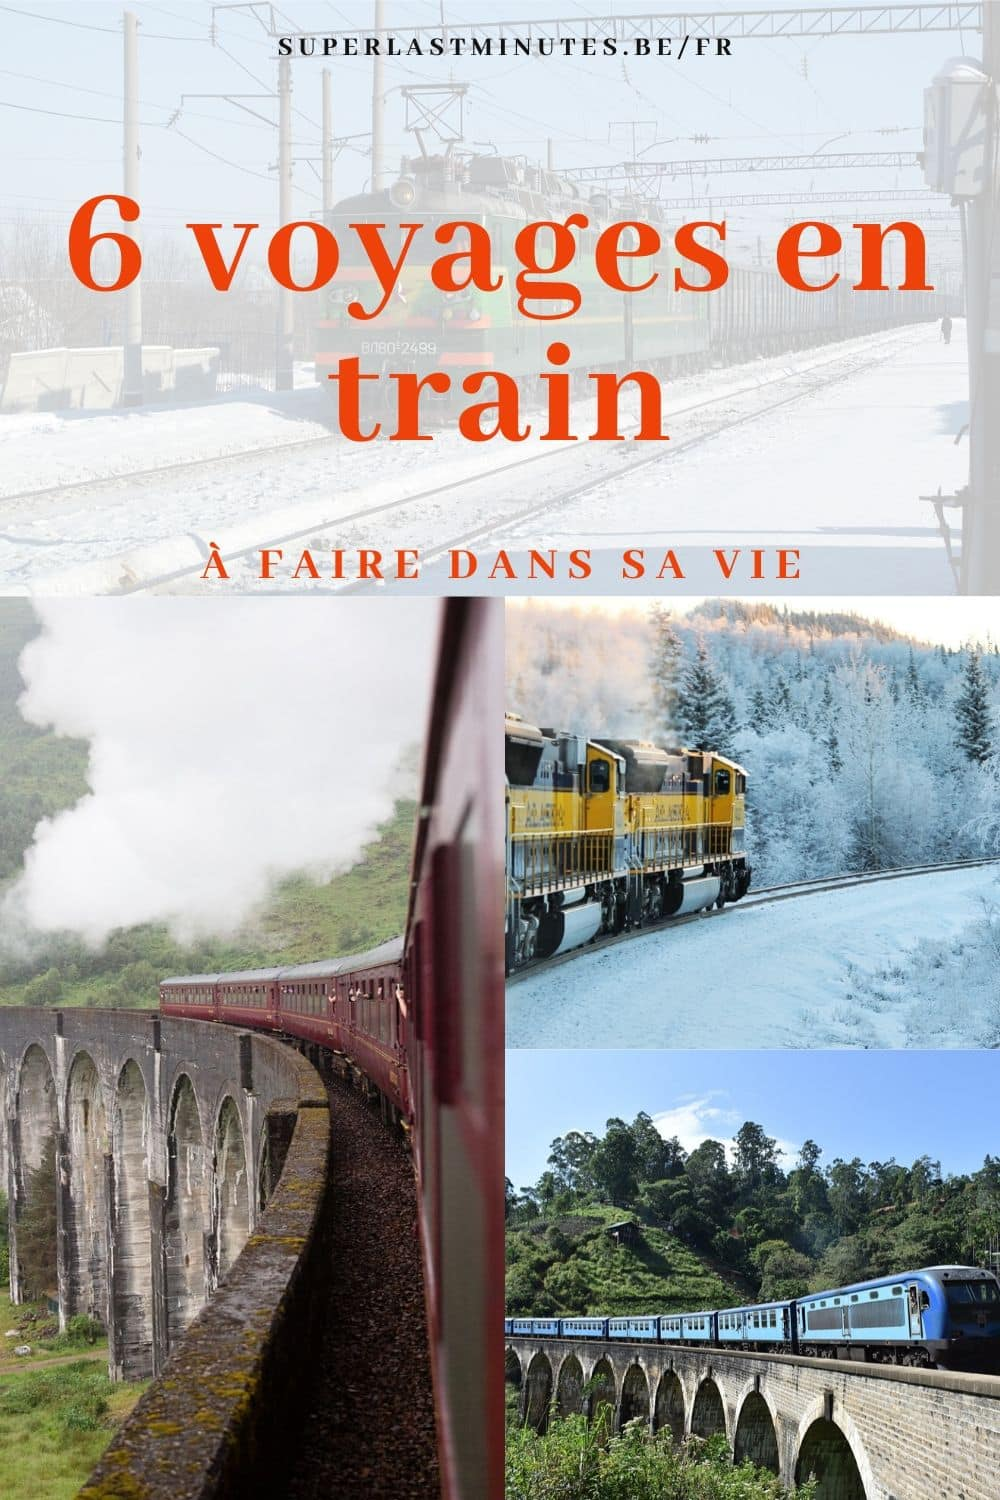 6 voyages en train